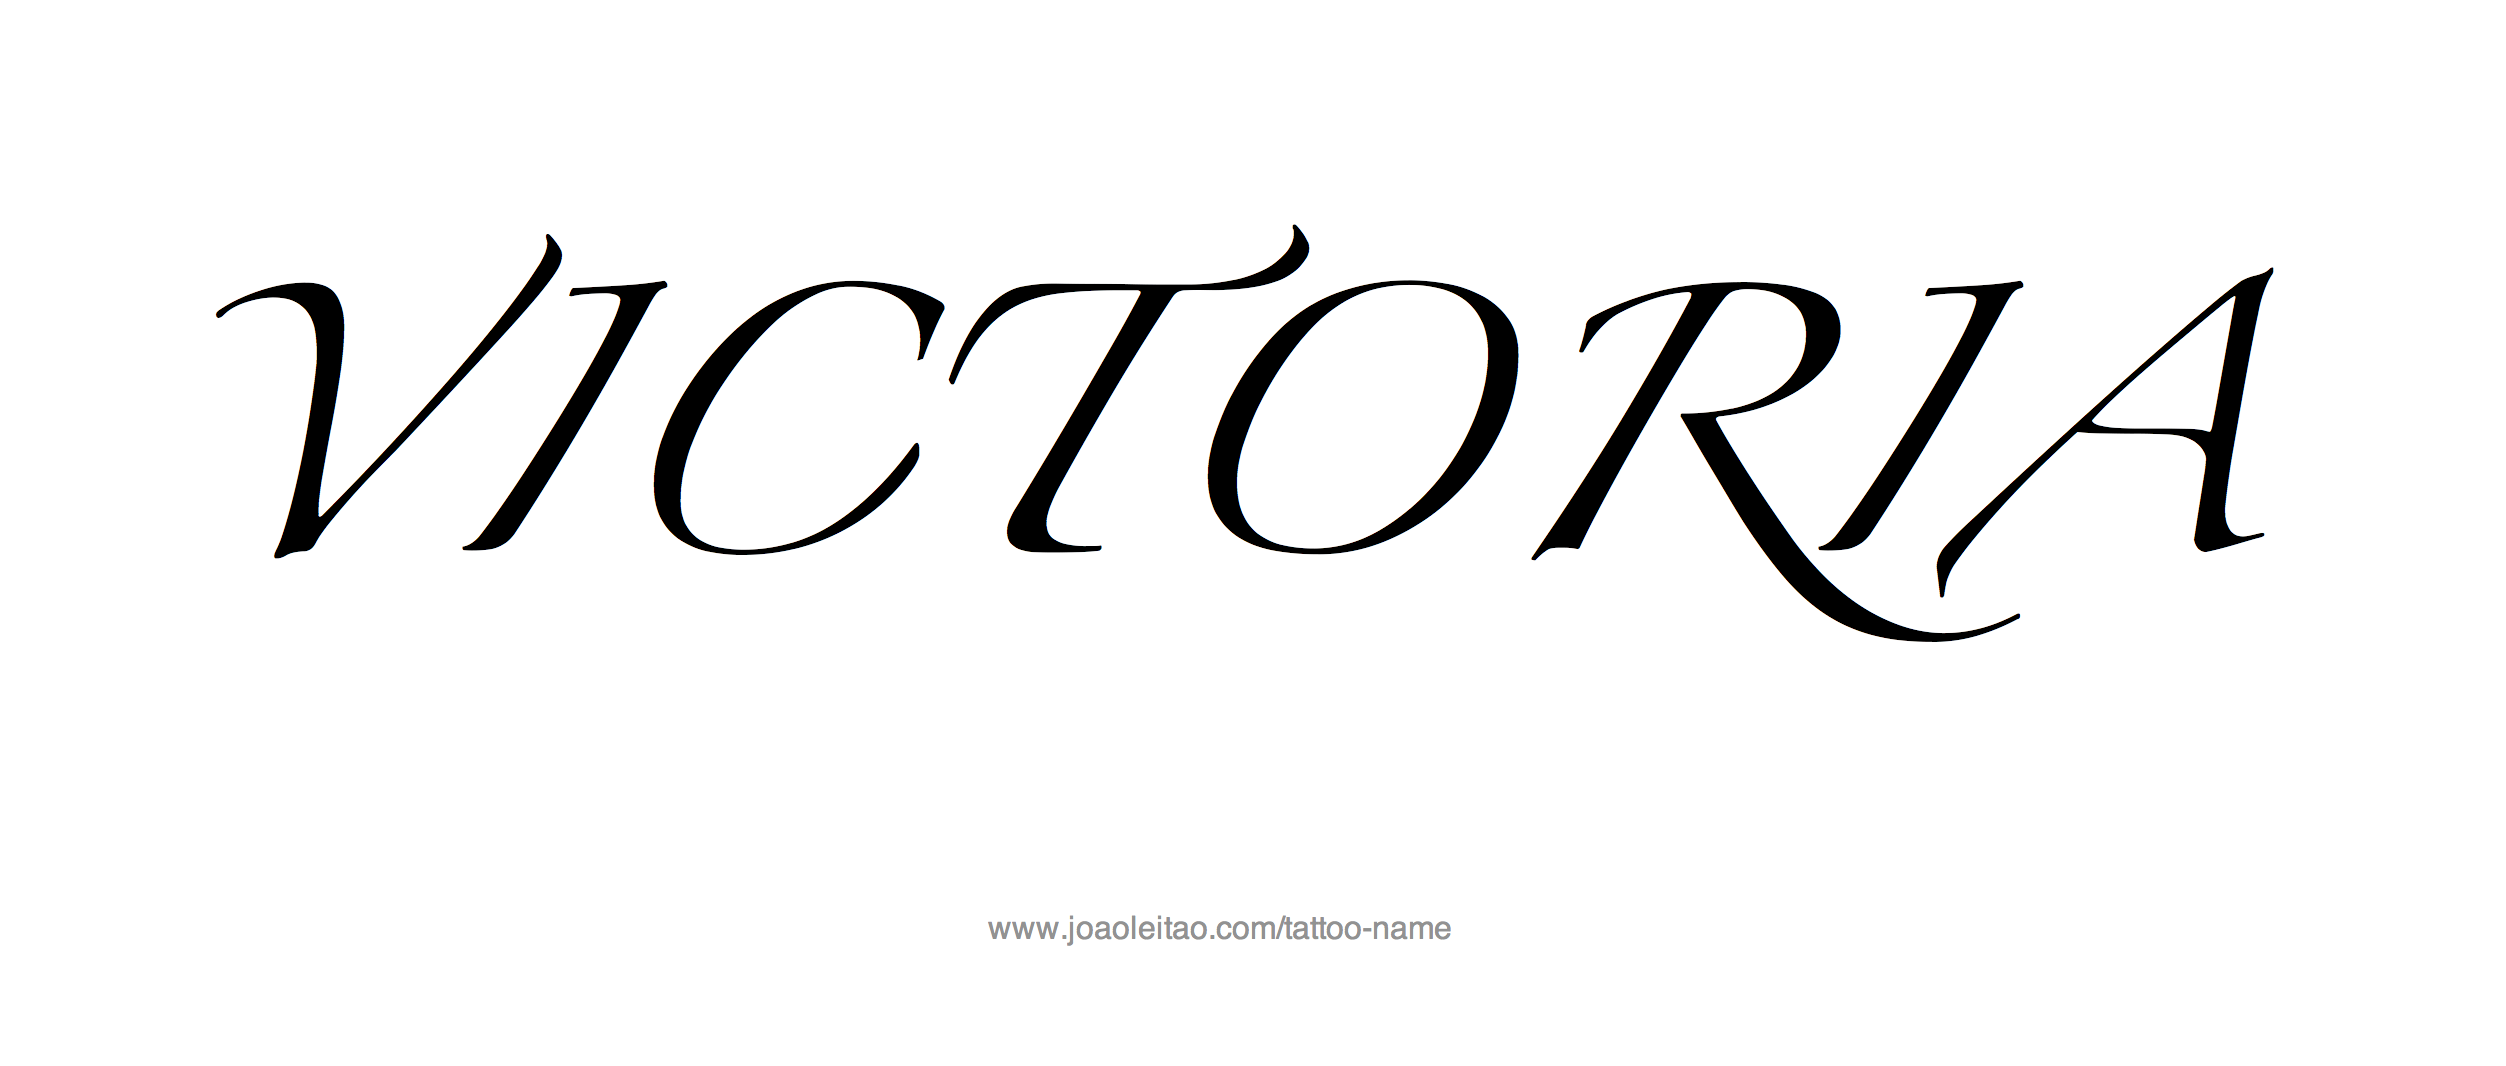 Victoria name tattoo designs tattoo designs tattoo and for Name style design